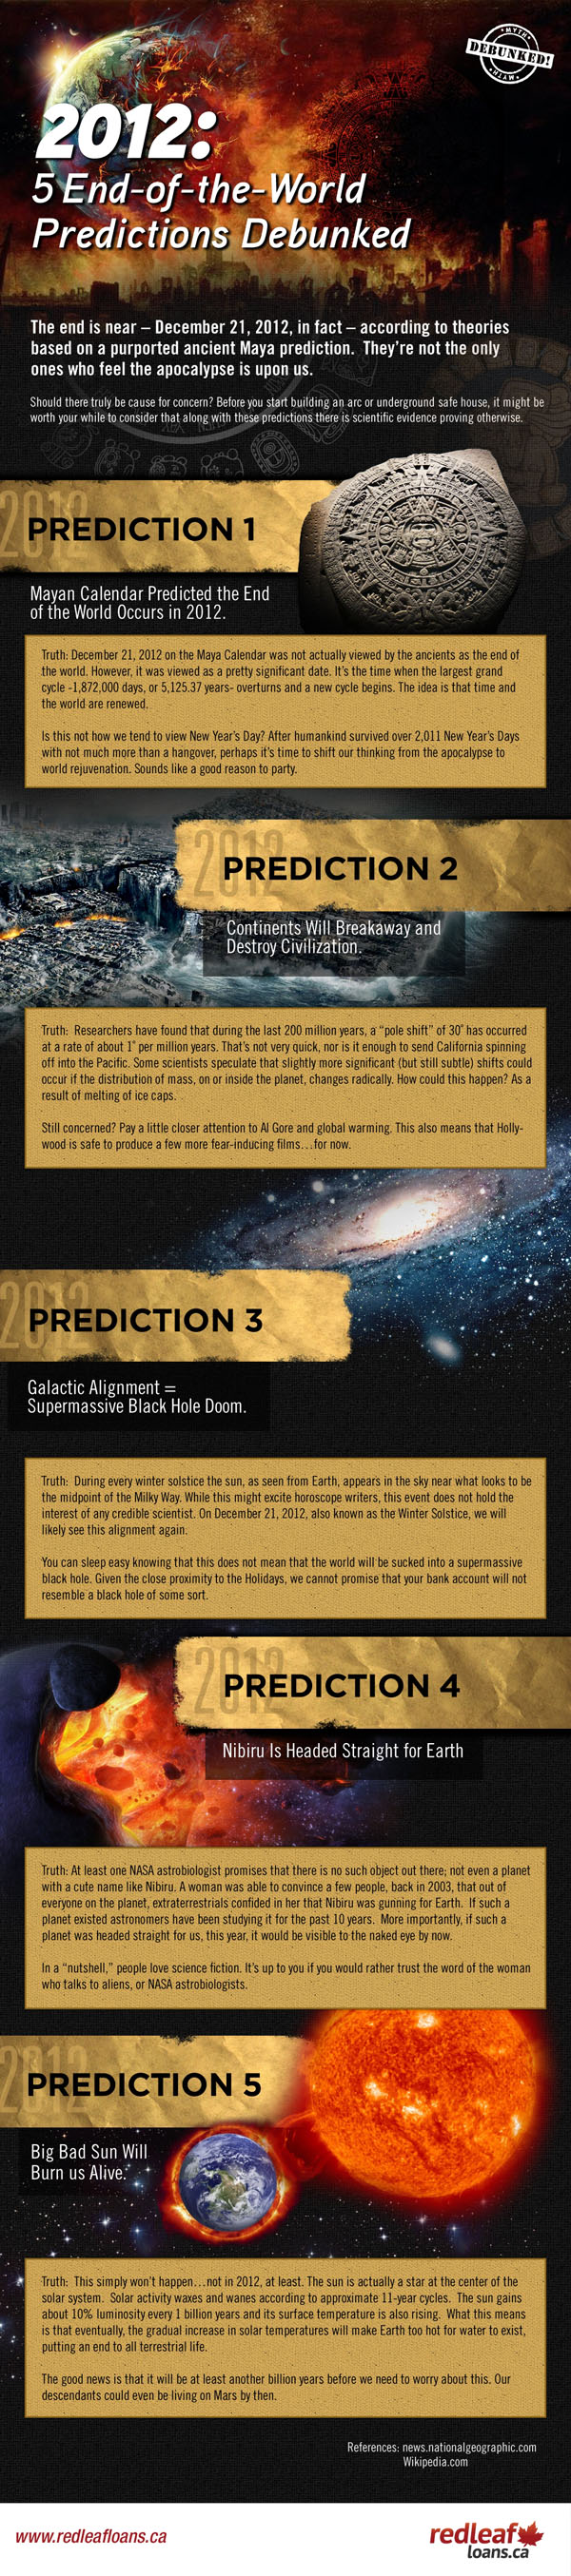 2012 End Of The world Predictions Debunked